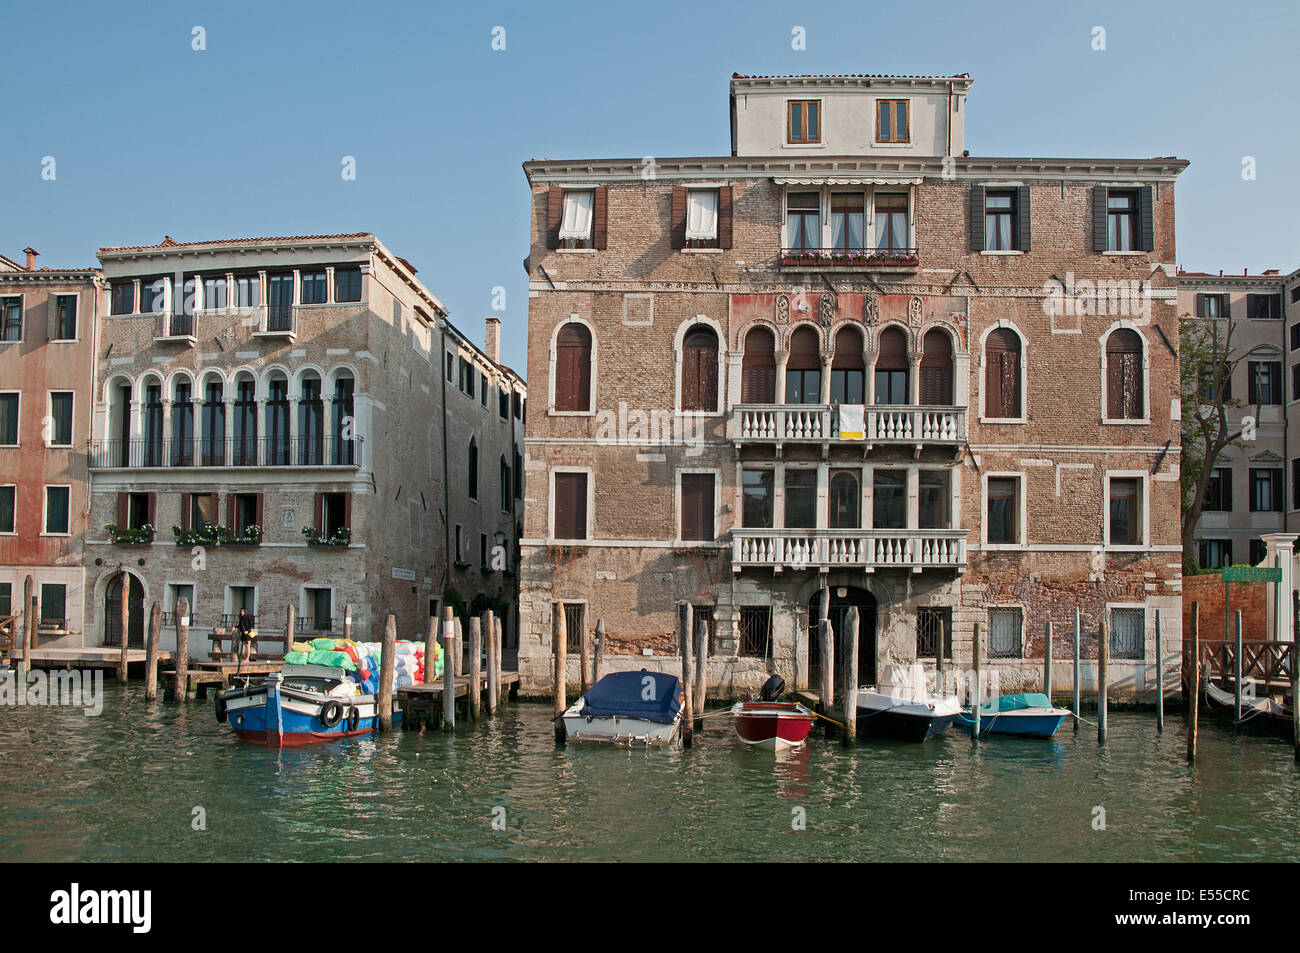 Substantial palace buildings houses palazzo pallazi with moored motor boats on the Grand Canal Venice Italy  GRAND - Stock Image